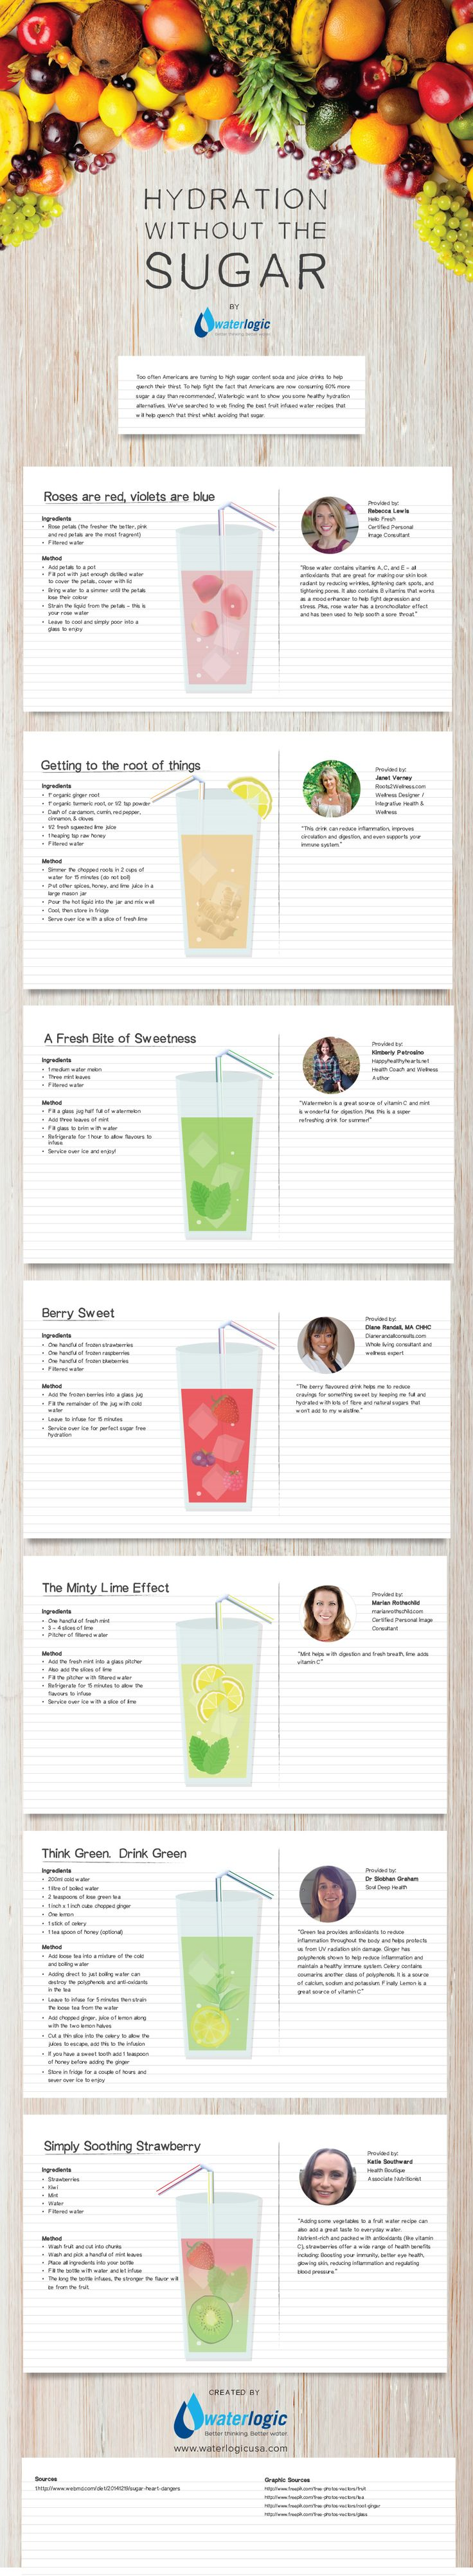 Too often we turn to high sugar content soda and juice drinks to help hydrate us and quench our thirst, especially during these summer months. Thanks to some experts in the field of health and nutrition, Waterlogic has compiled a list of healthy hydration alternatives, our best fruit infused water recipes that will help quench that thirst while avoiding sugar during these sizzling summer months // dropbottle.co